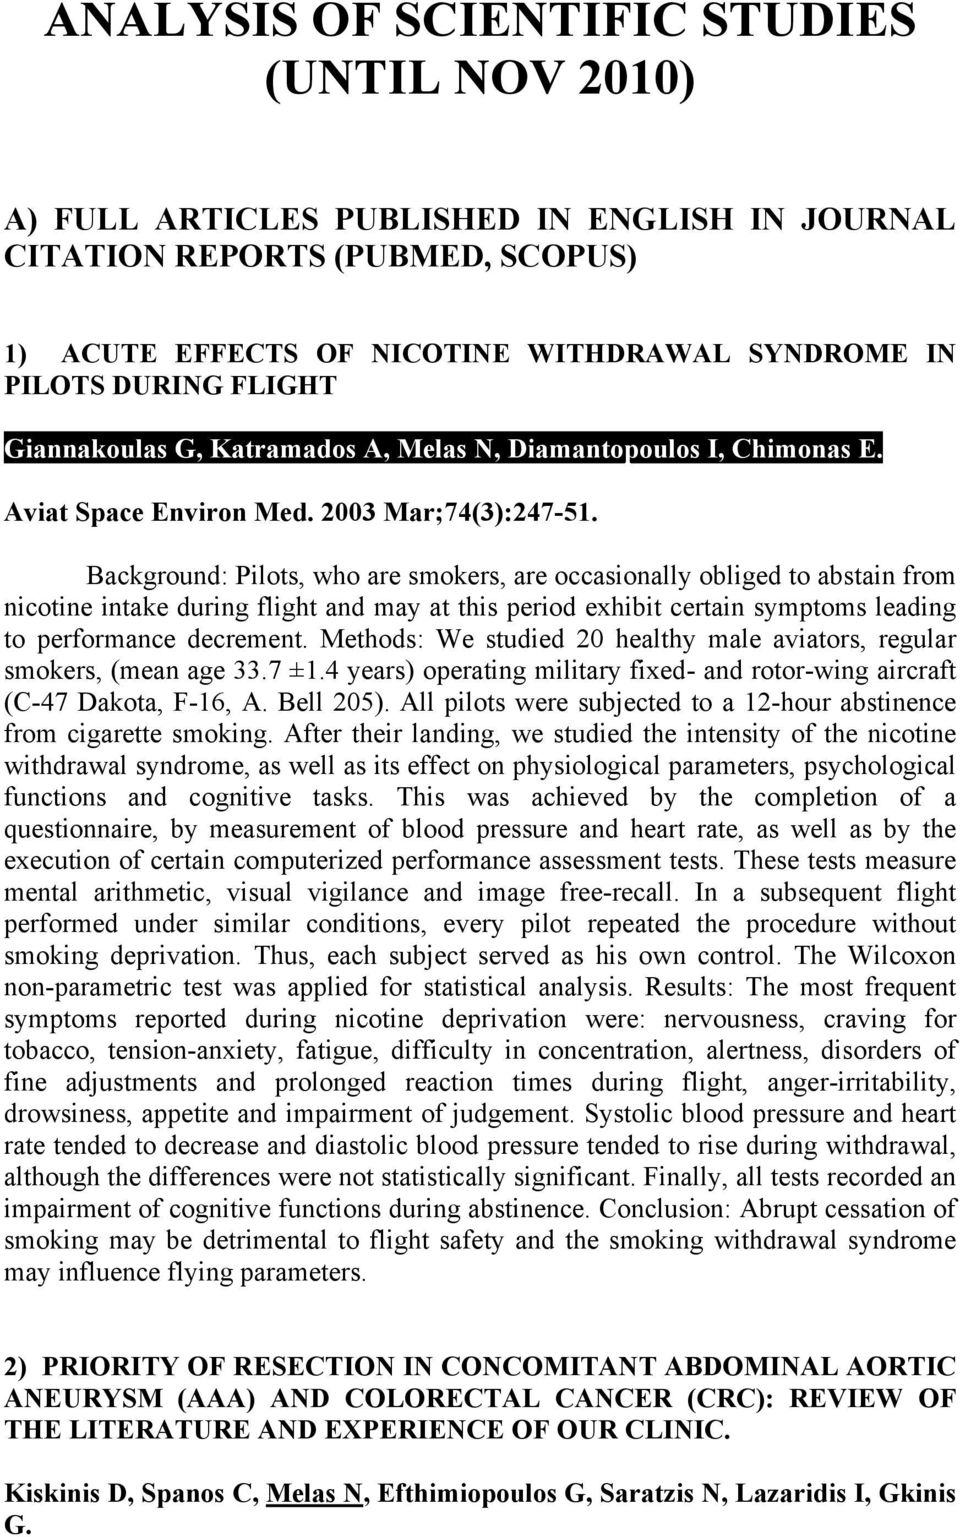 Background: Pilots, who are smokers, are occasionally obliged to abstain from nicotine intake during flight and may at this period exhibit certain symptoms leading to performance decrement.